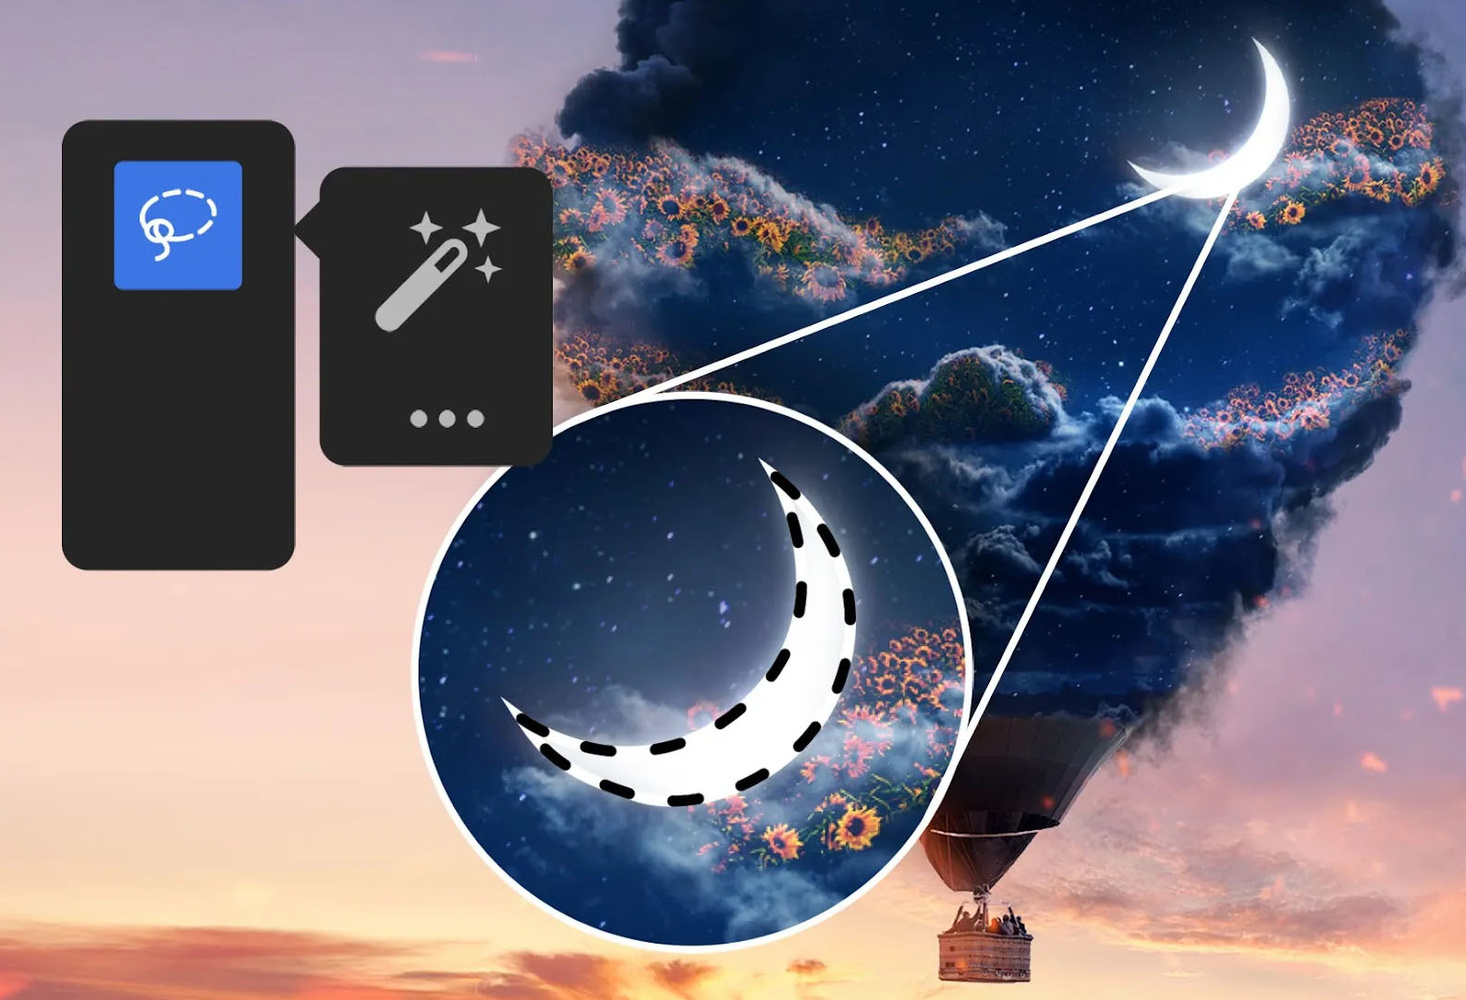 Photoshop Update Offer Sky Replacement, Bug Fixes, and Healing Brush and Magic Wand on iPad 8